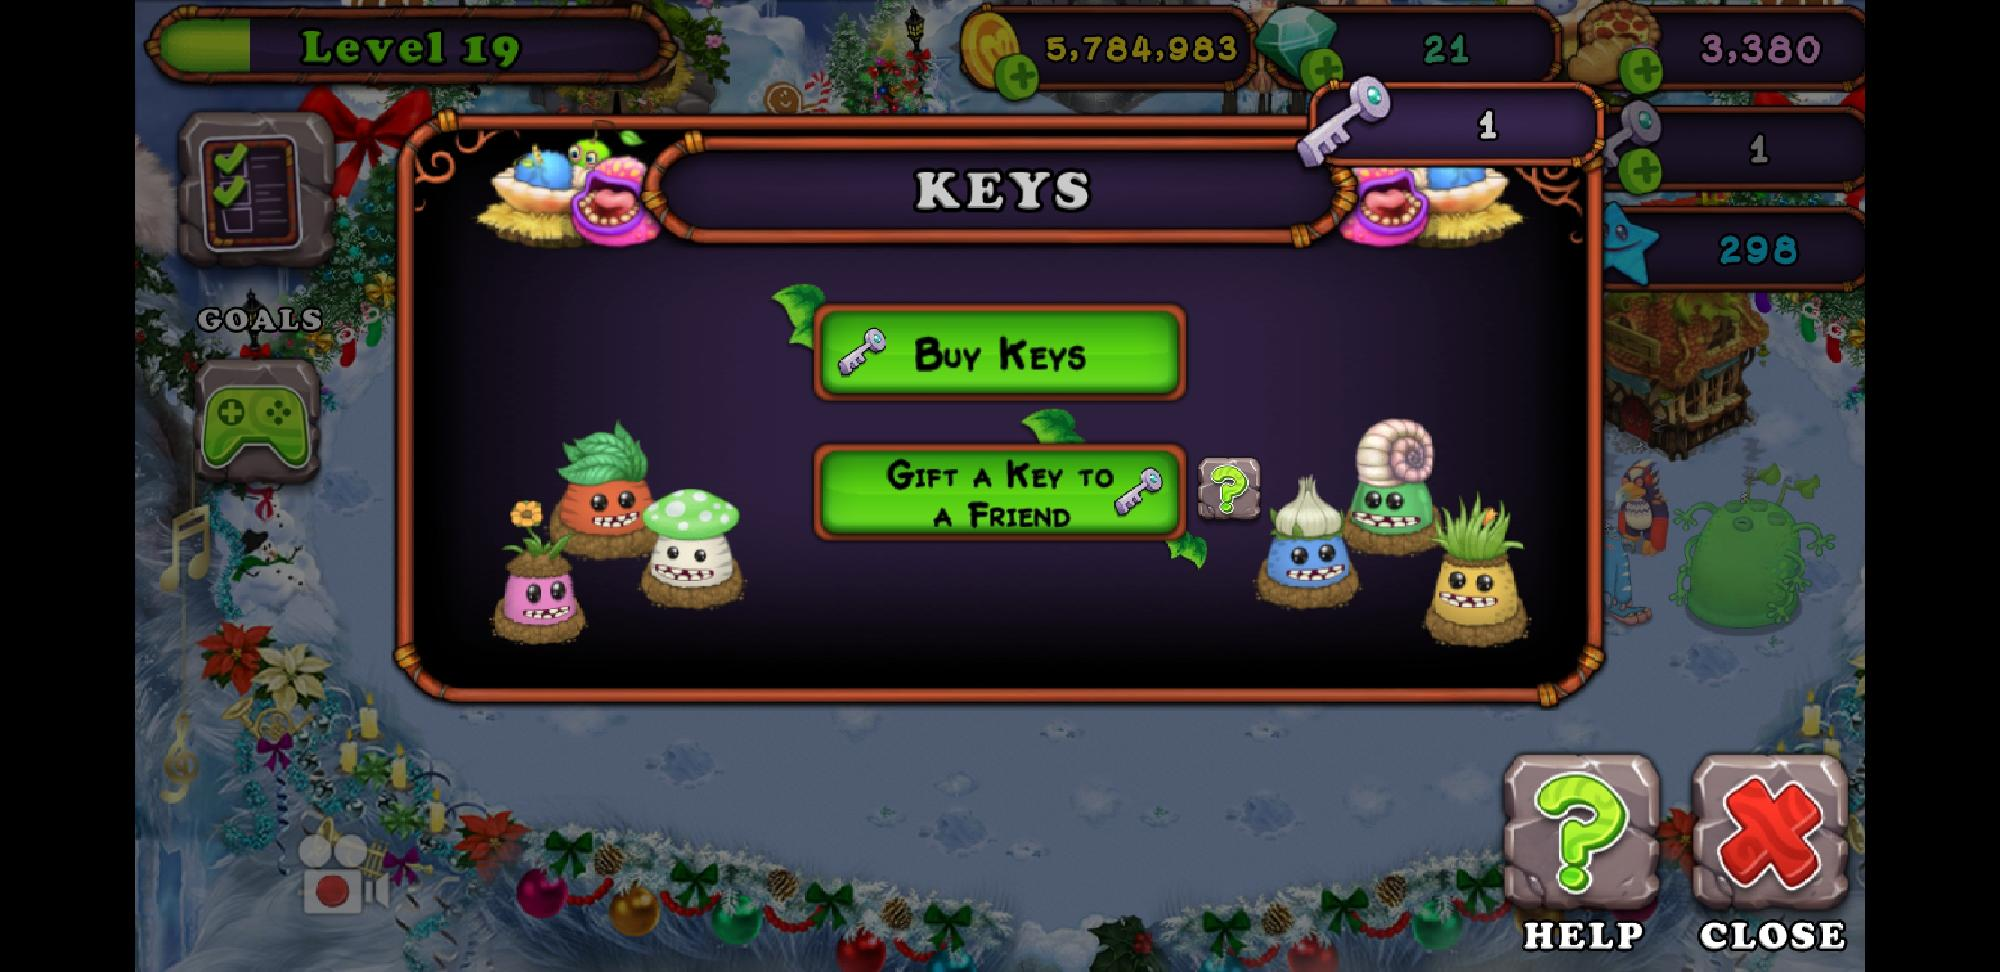 Could someone give me a key? Ill give 1 back.